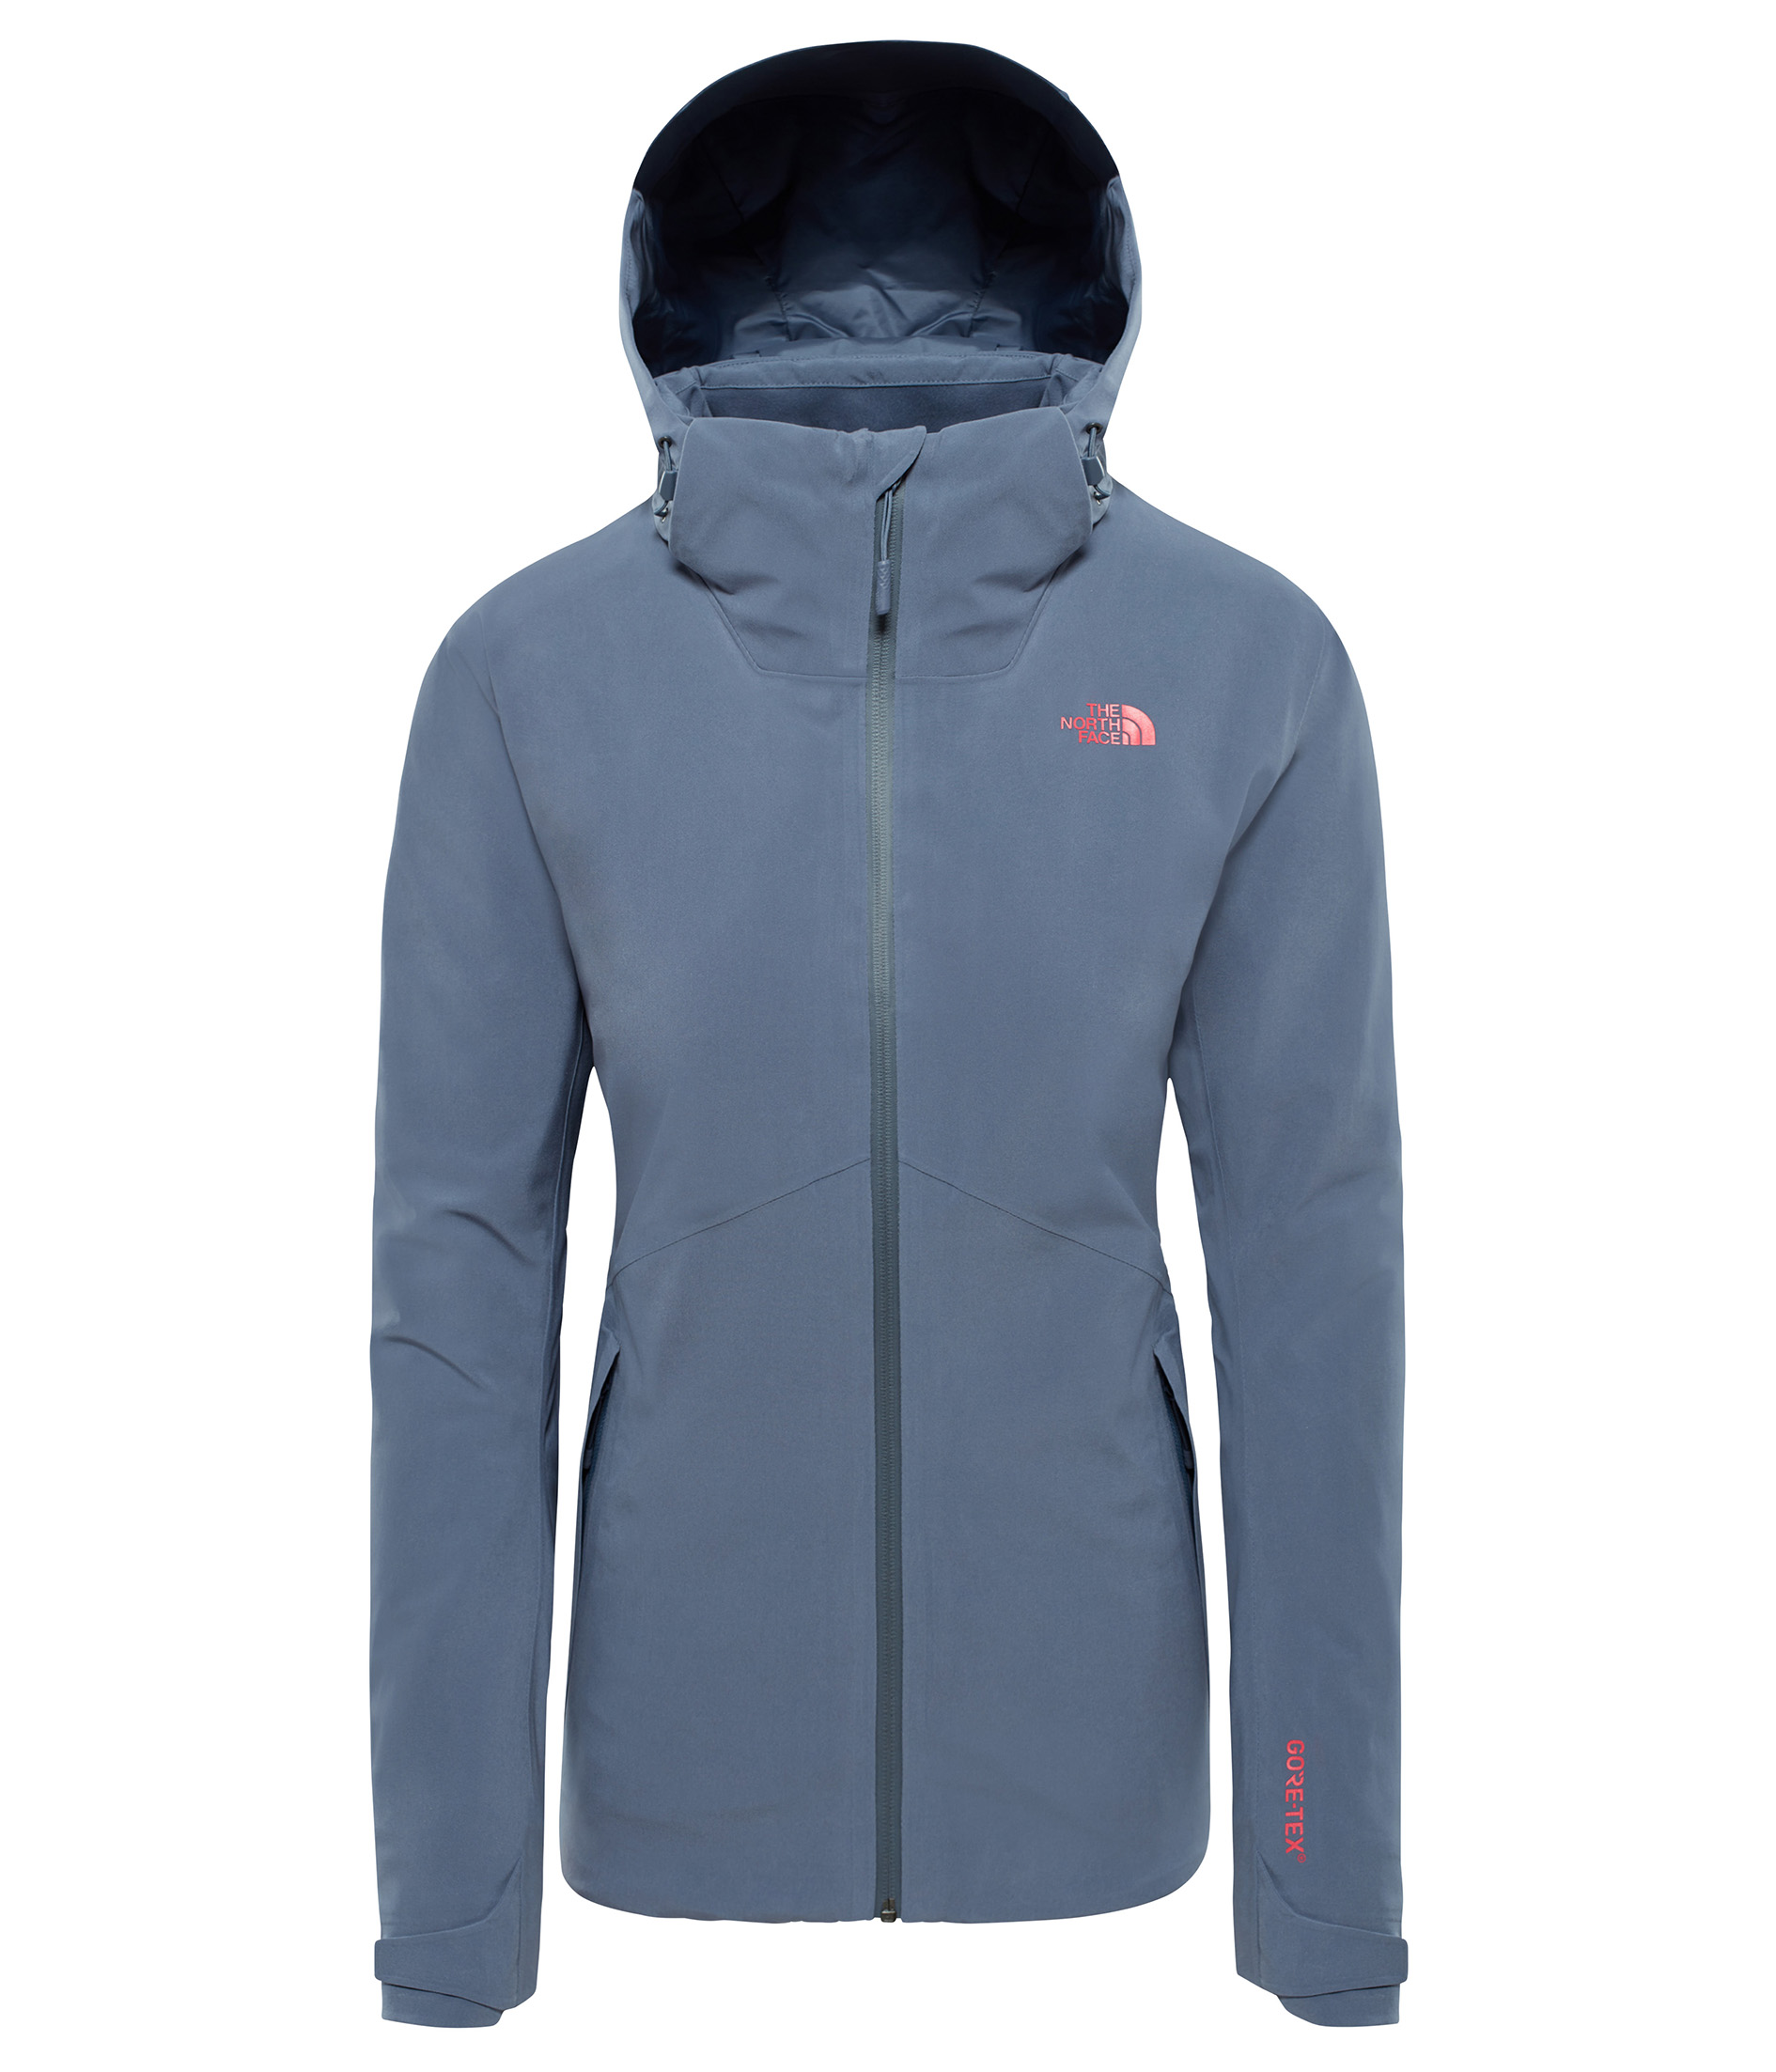 THE NORTH FACE W INSULATED APEX FLEX GTX 2.0 JACKET, GRISAILLE GREY/ velikost: M